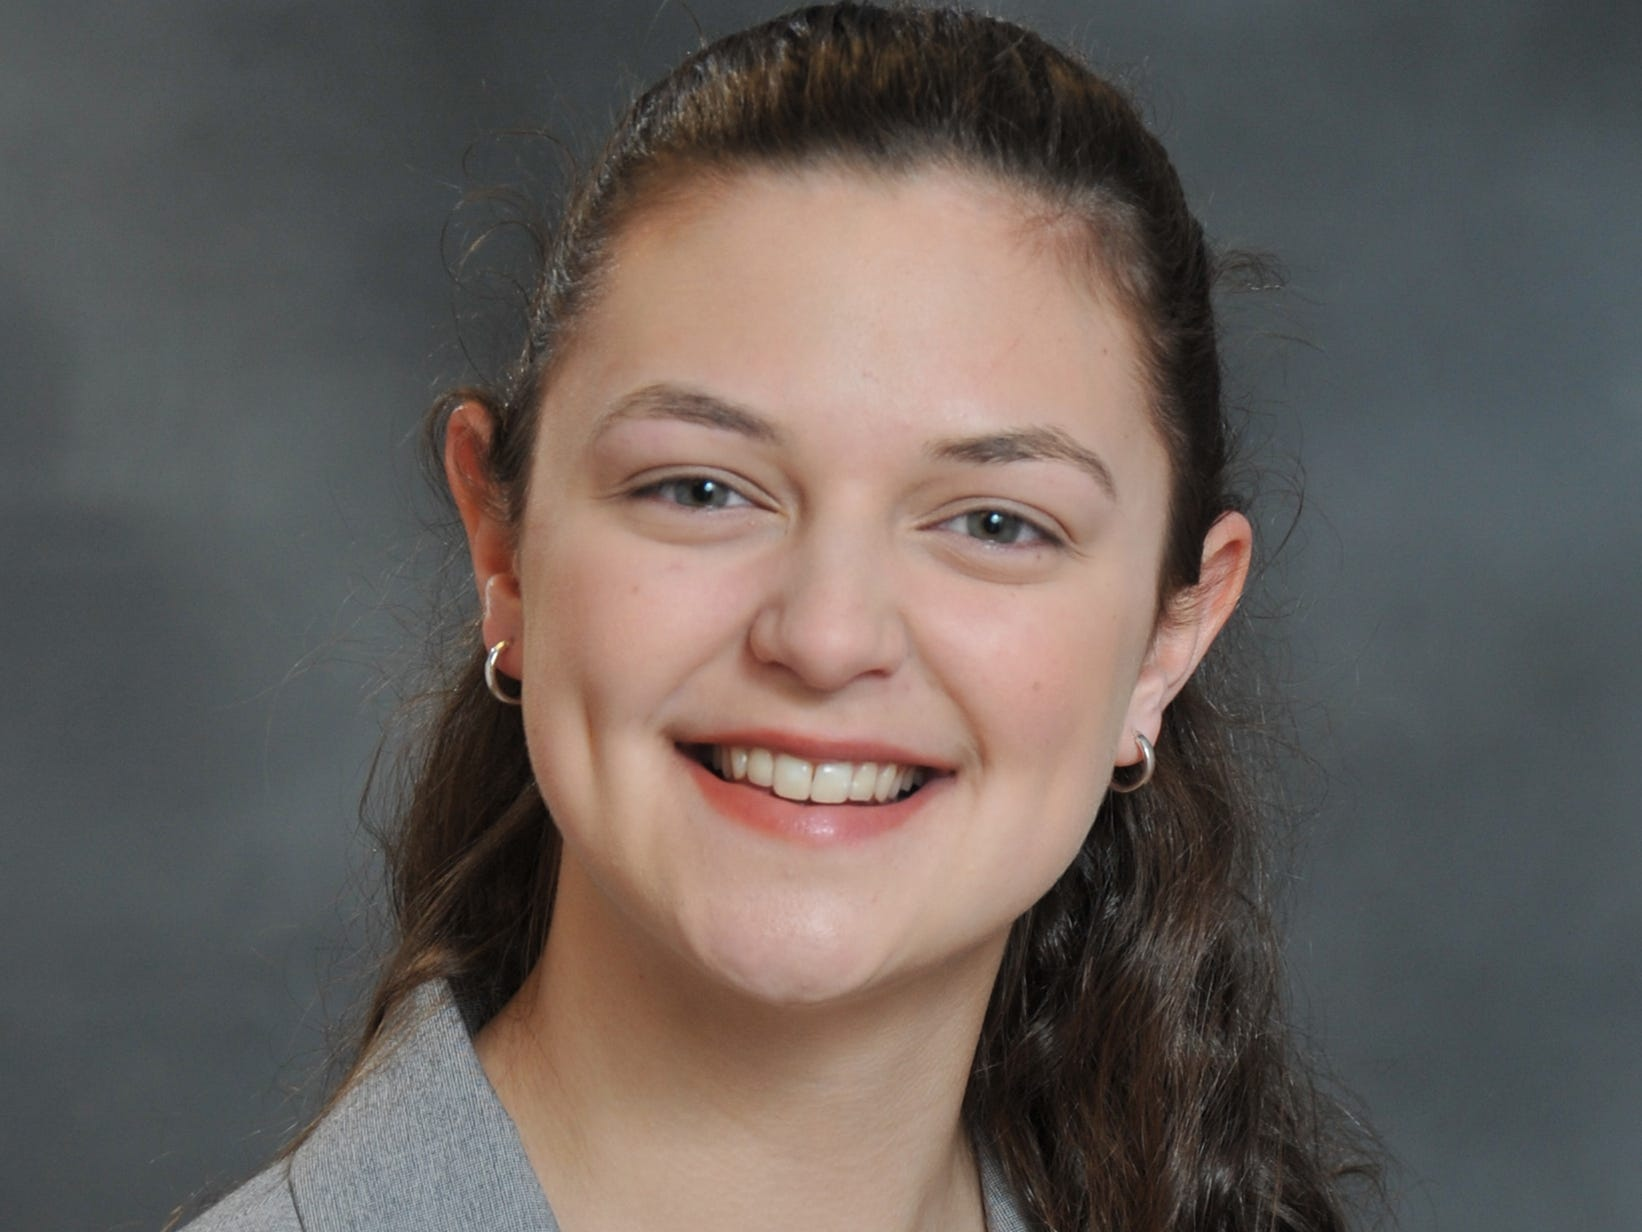 Taylor Forry, Northeastern High School, Distinguished Young Women of York County participant.